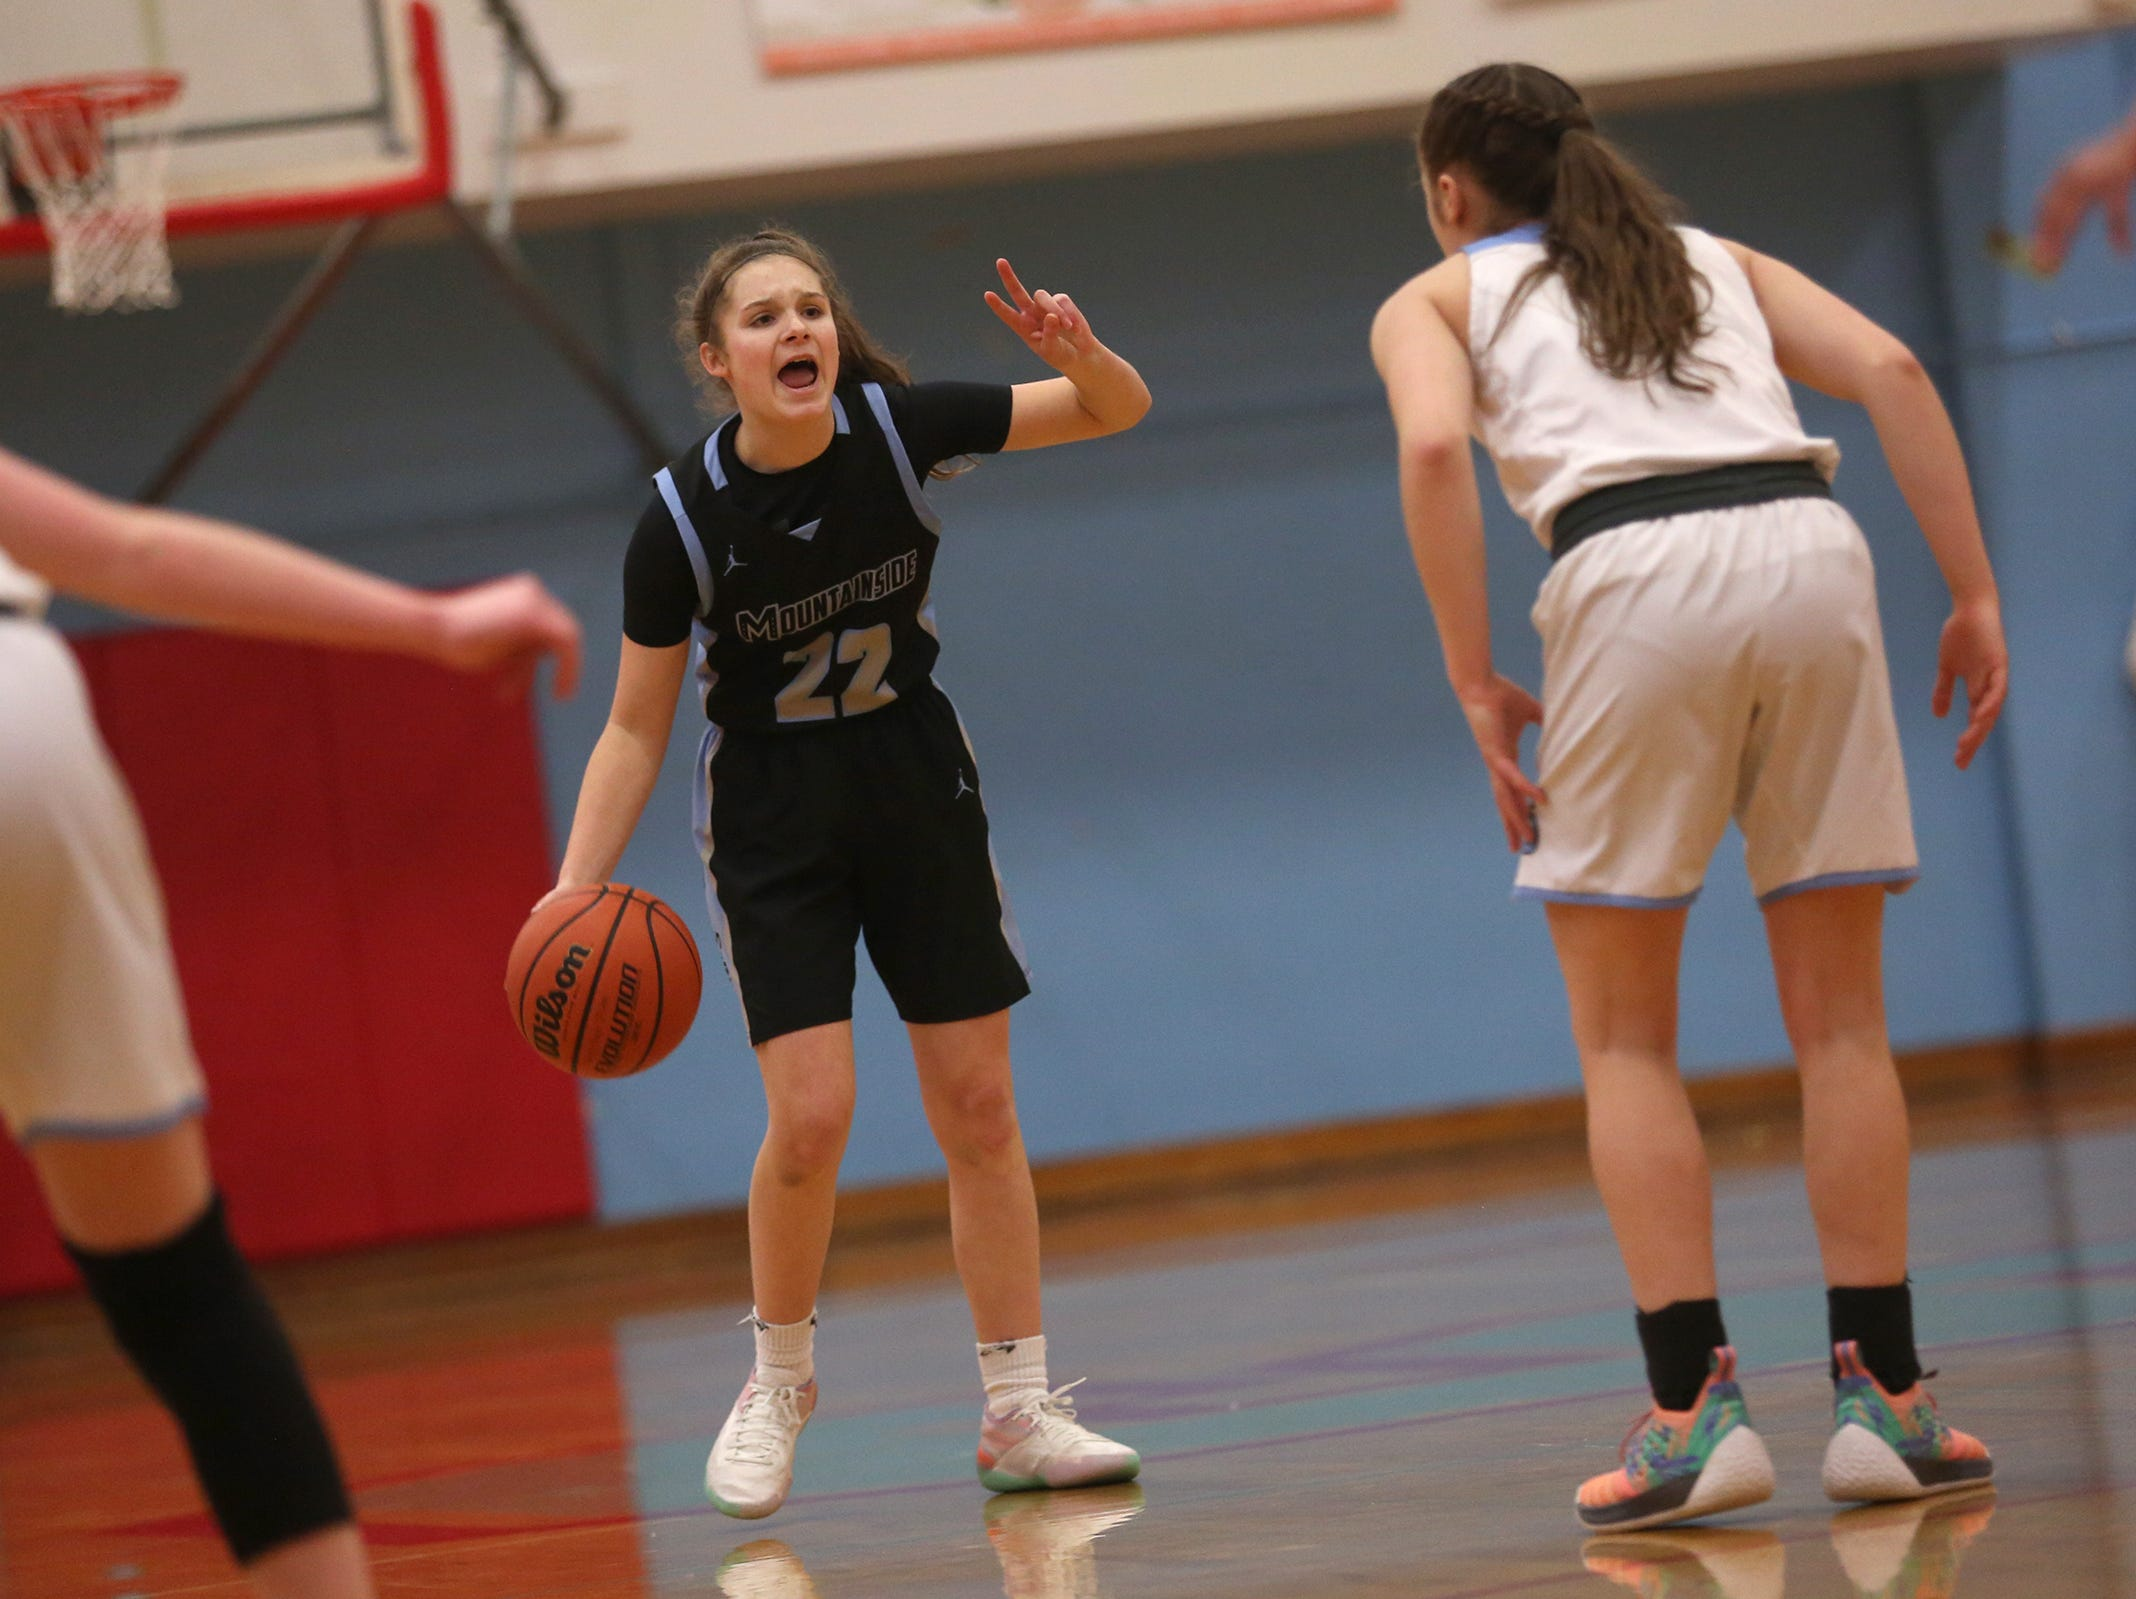 Mountainside's Halle Hageman (22) calls out to a play during the South Salem vs. Mountainside girls basketball OSAA playoff game in Salem on Thursday, Feb. 28, 2019.